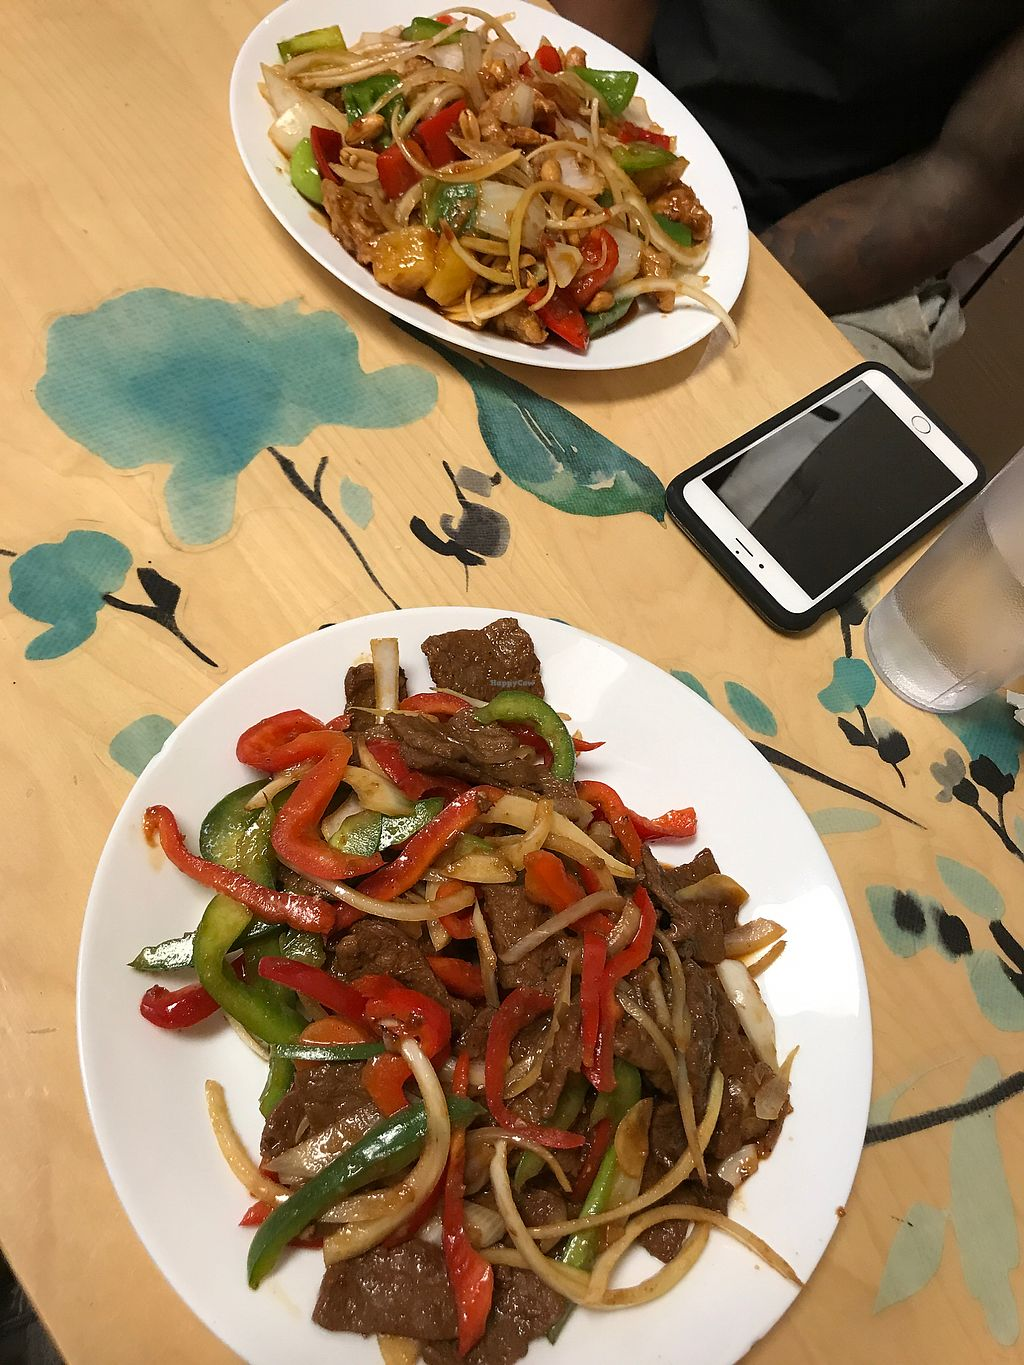 """Photo of Loving Hut  by <a href=""""/members/profile/kamisha05"""">kamisha05</a> <br/>Mongolian Beef and Kung Poa Chicken  <br/> September 24, 2017  - <a href='/contact/abuse/image/66087/307674'>Report</a>"""